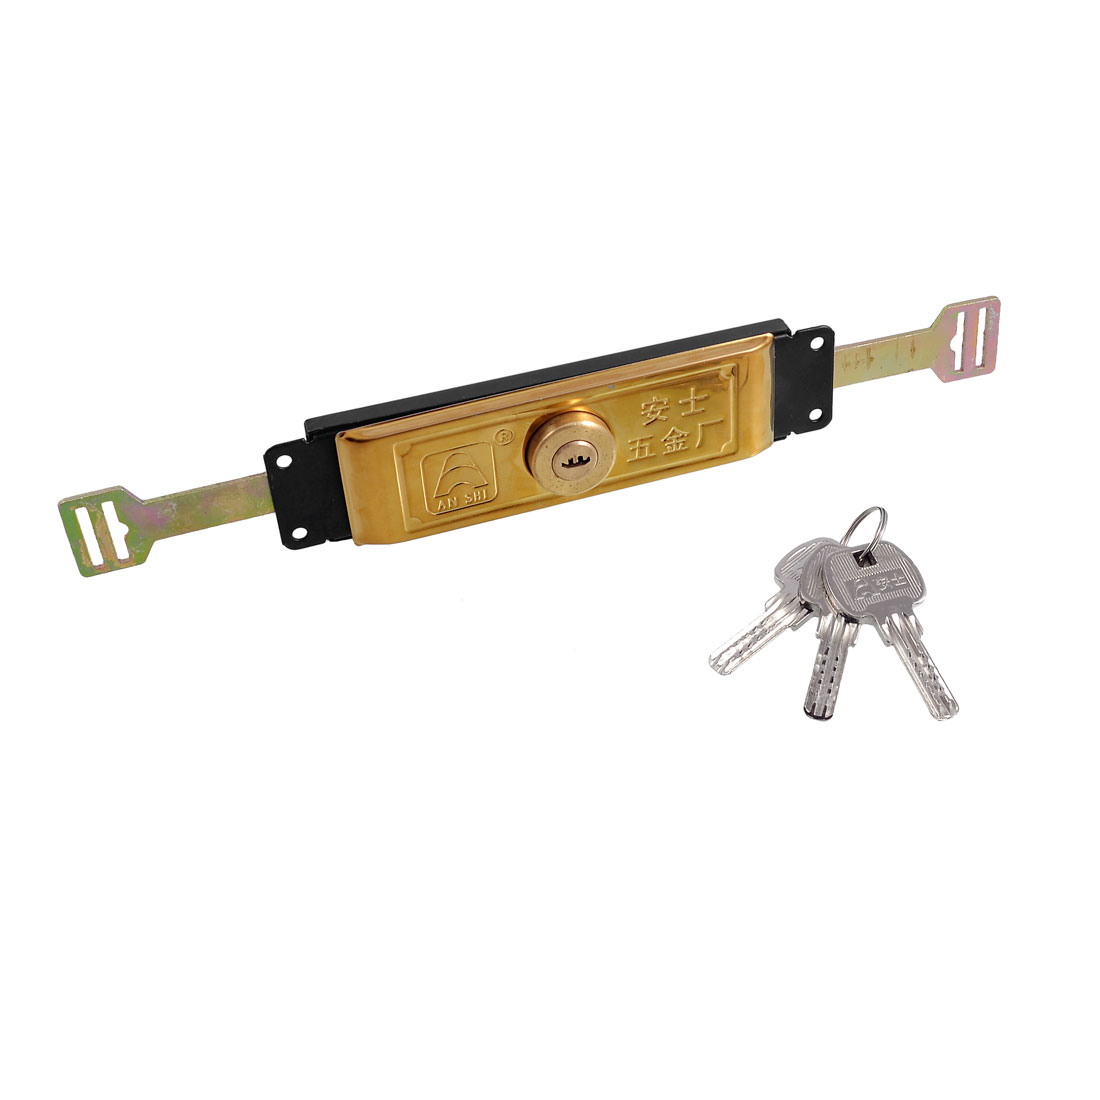 UXCELL Gold Tone Black Brass Metal Garage Pulling Roller Door Lock W <font><b>3</b></font> Keys